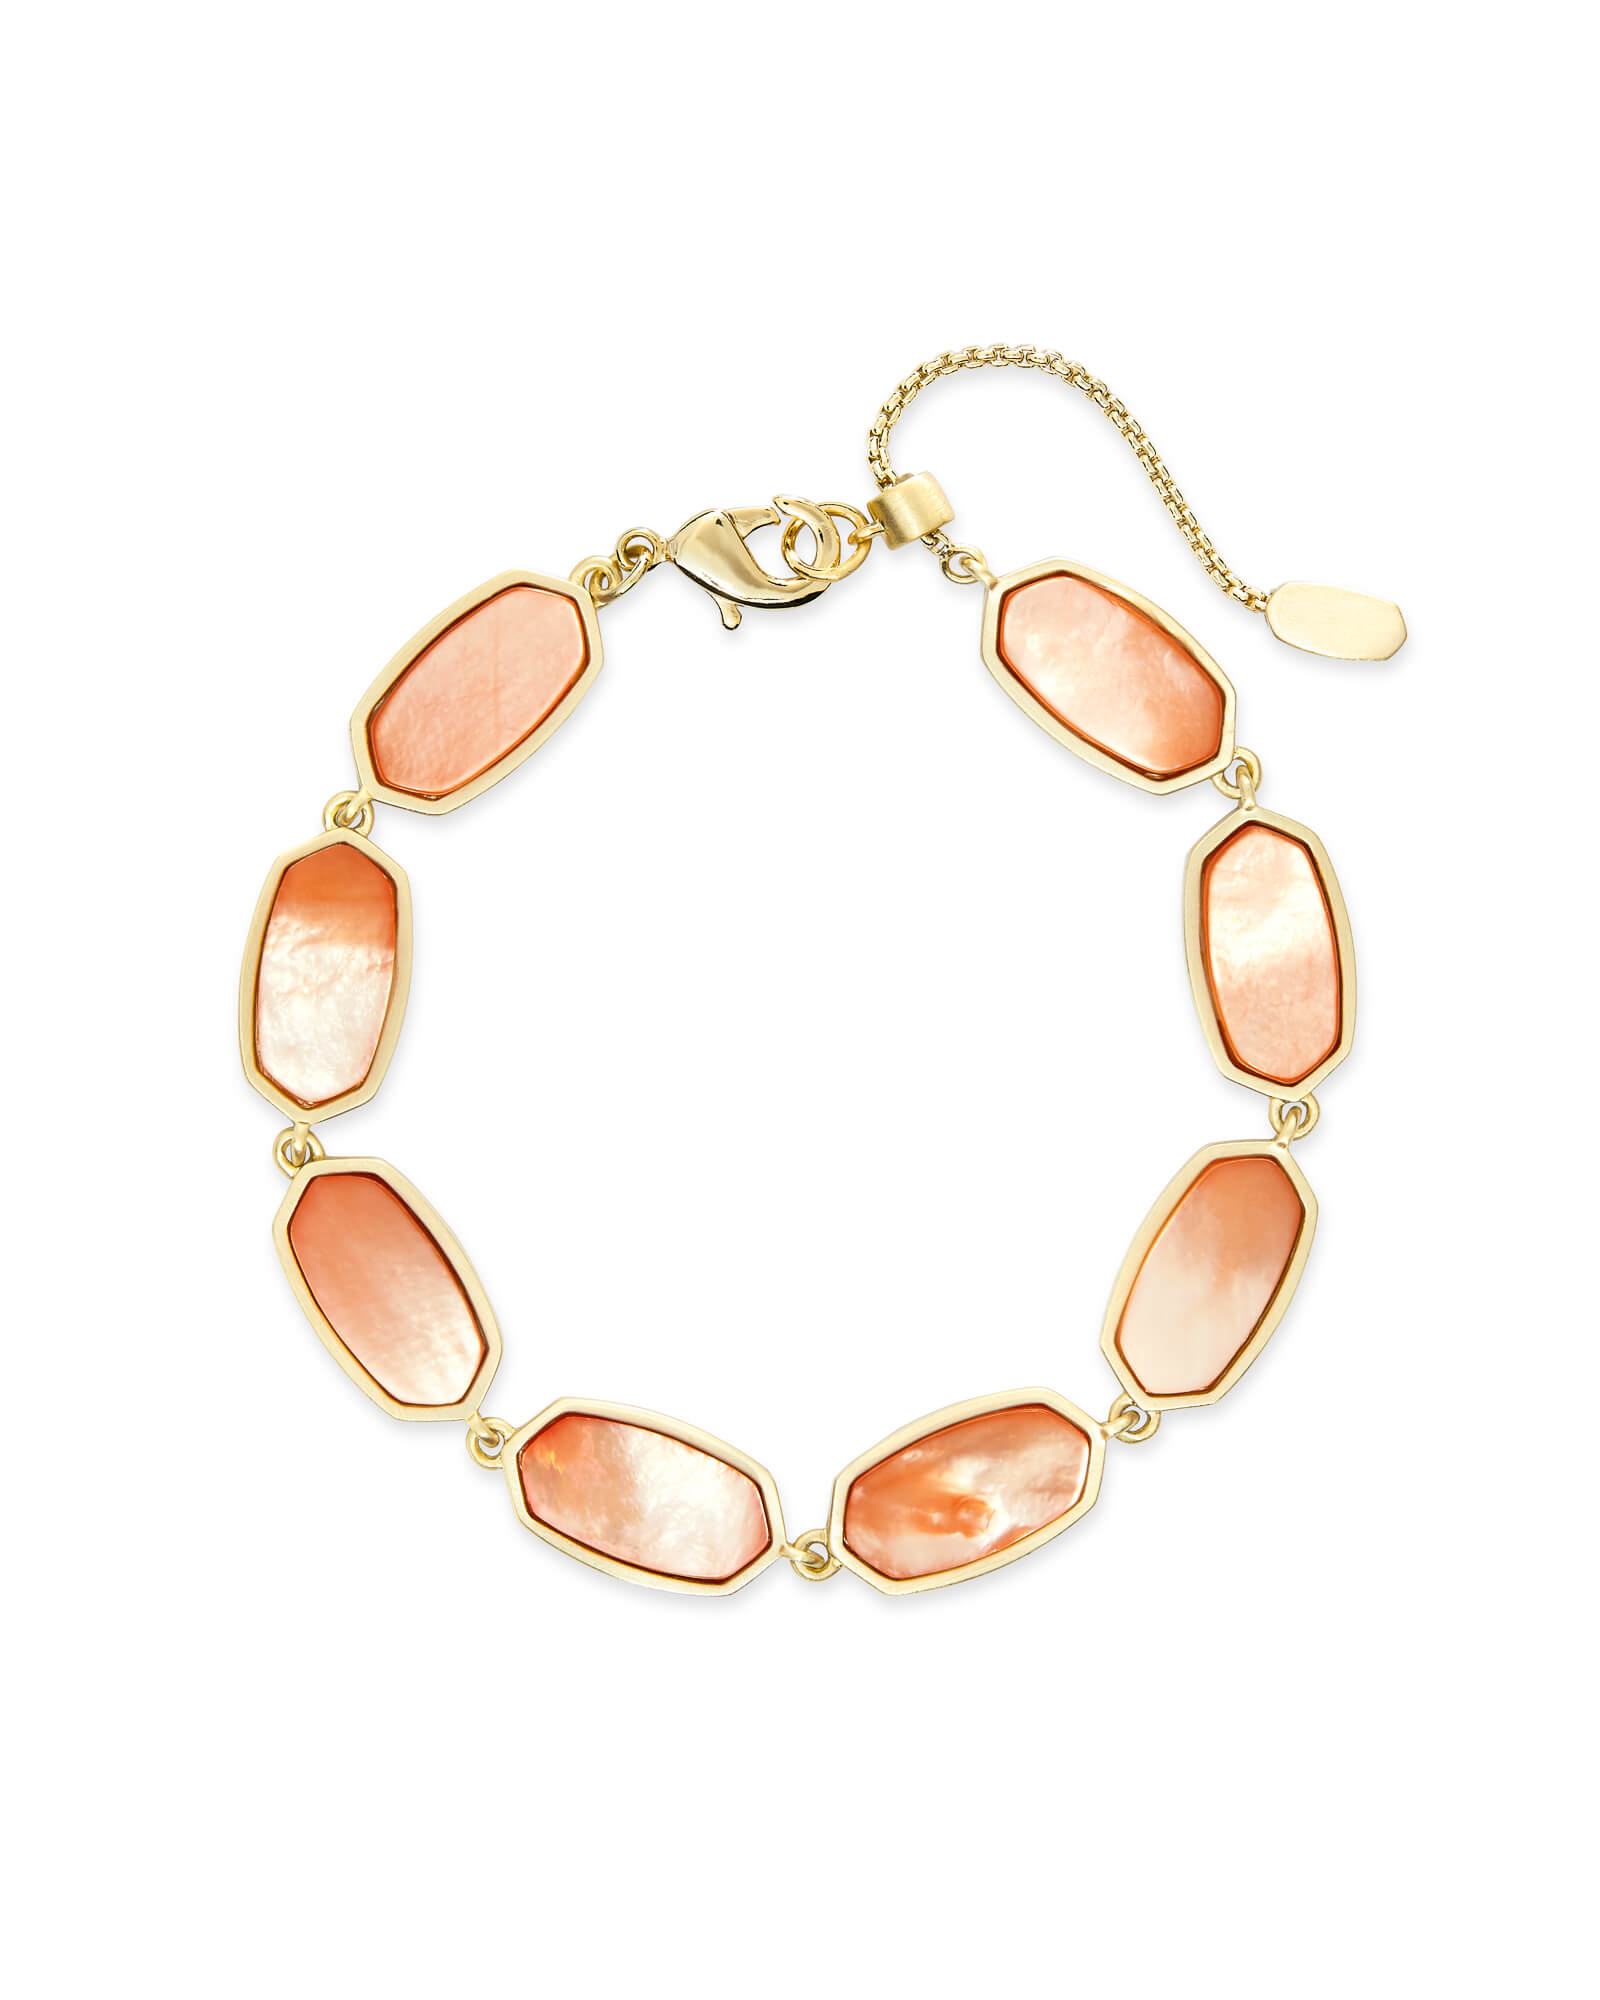 Millie Gold Link Bracelet in Peach Pearl